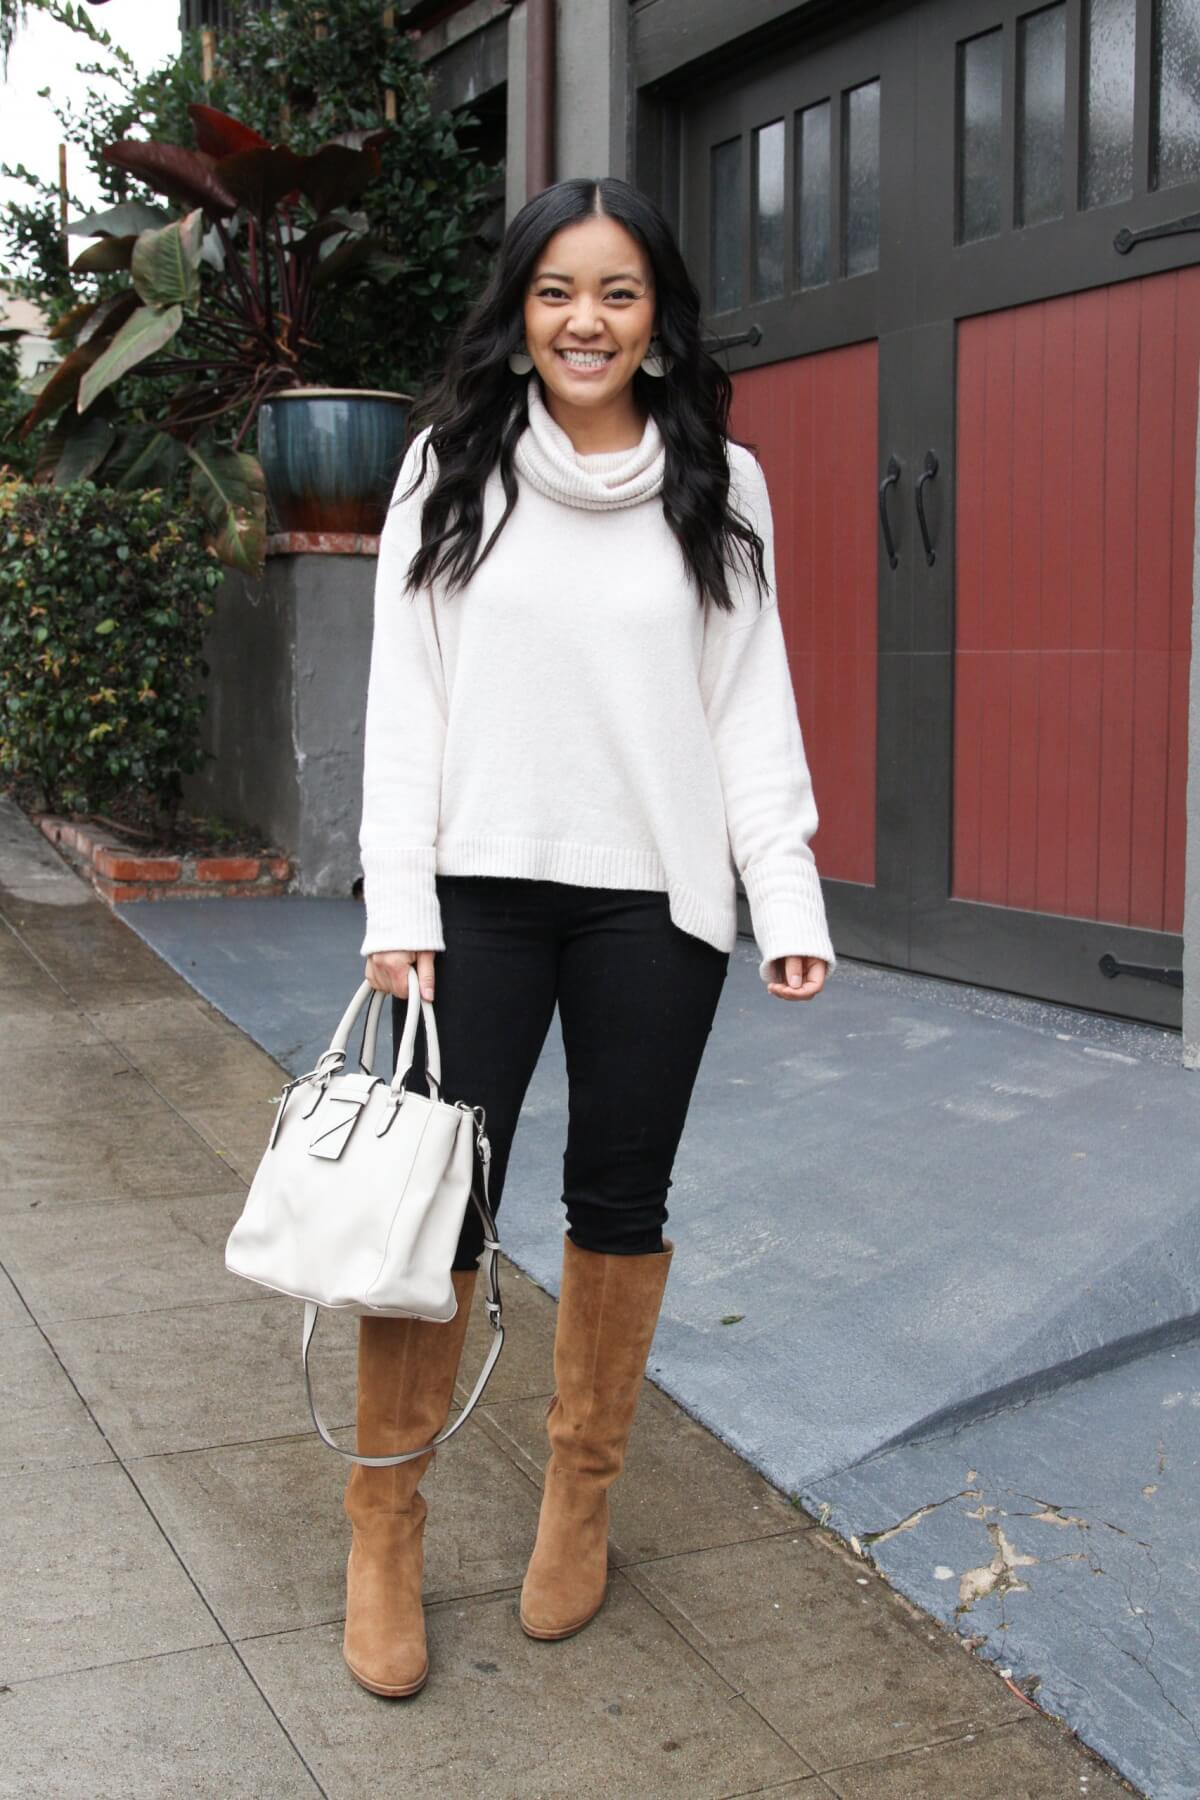 winter outfit: white turtleneck sweater + black jeans + cognac boots + white handbag